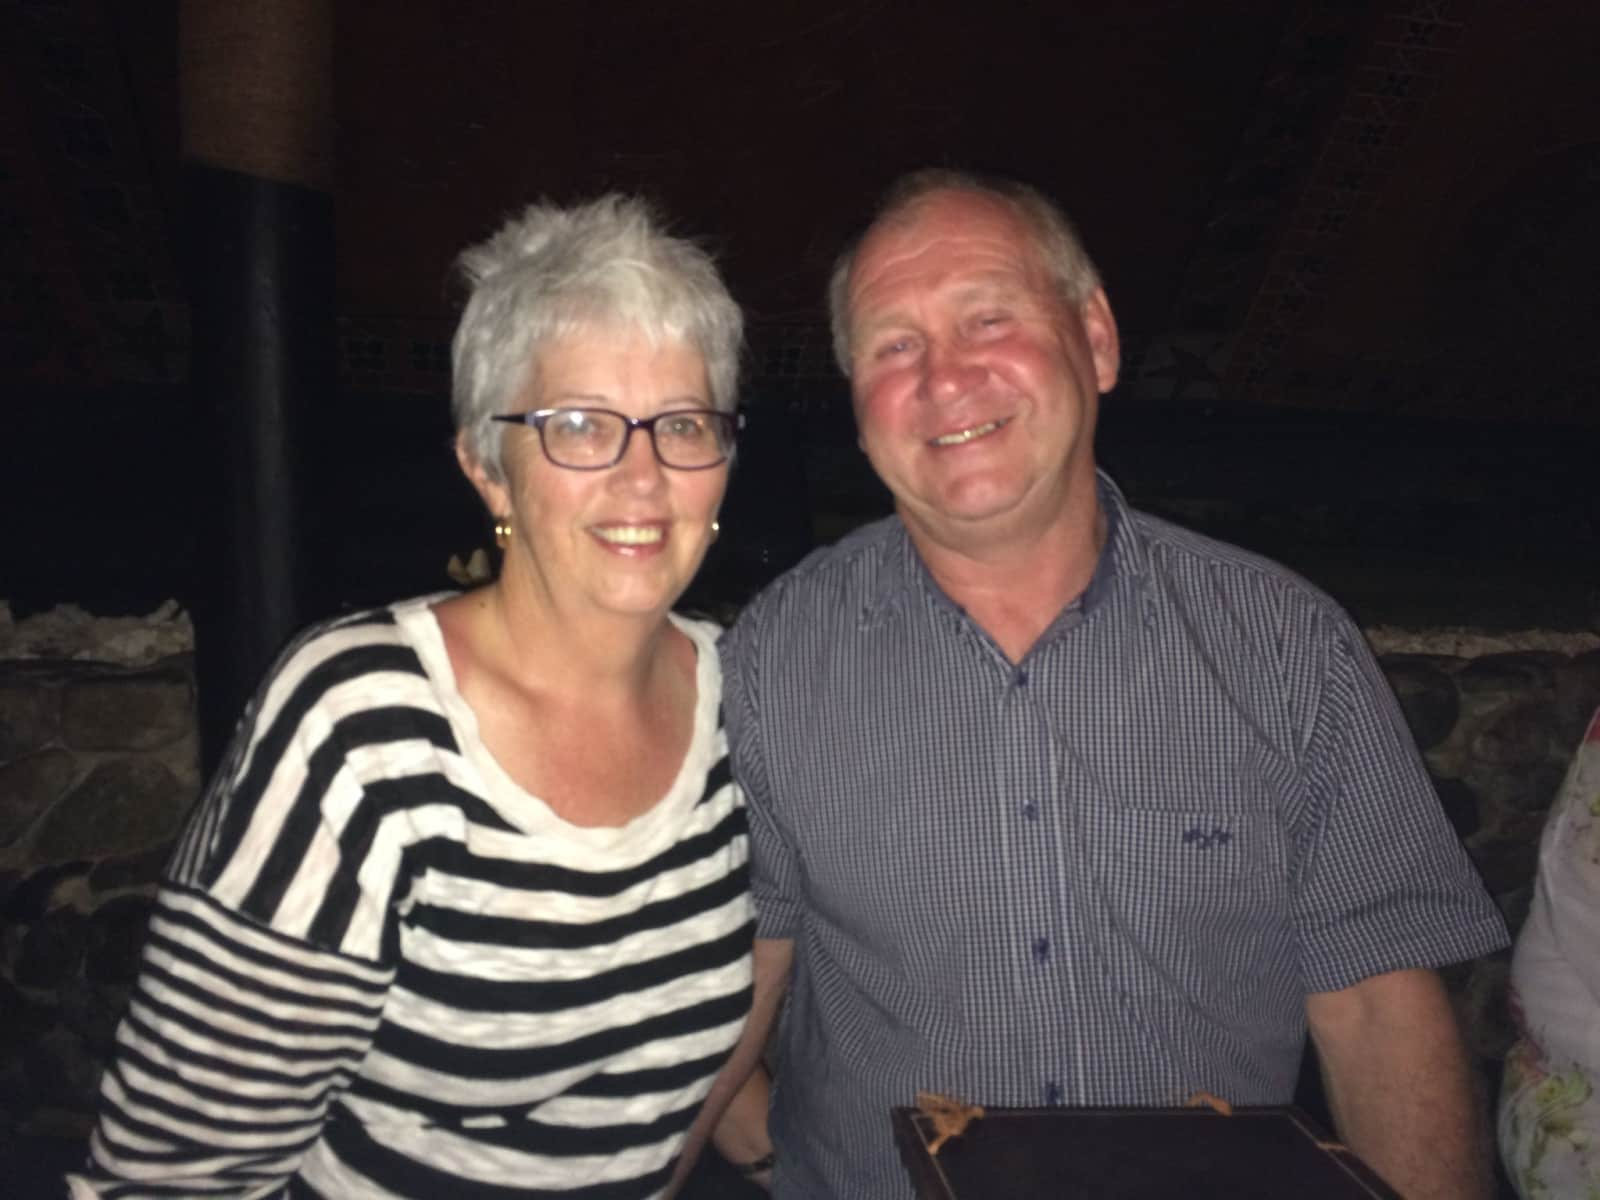 Sharon & Dave from Havelock North, New Zealand